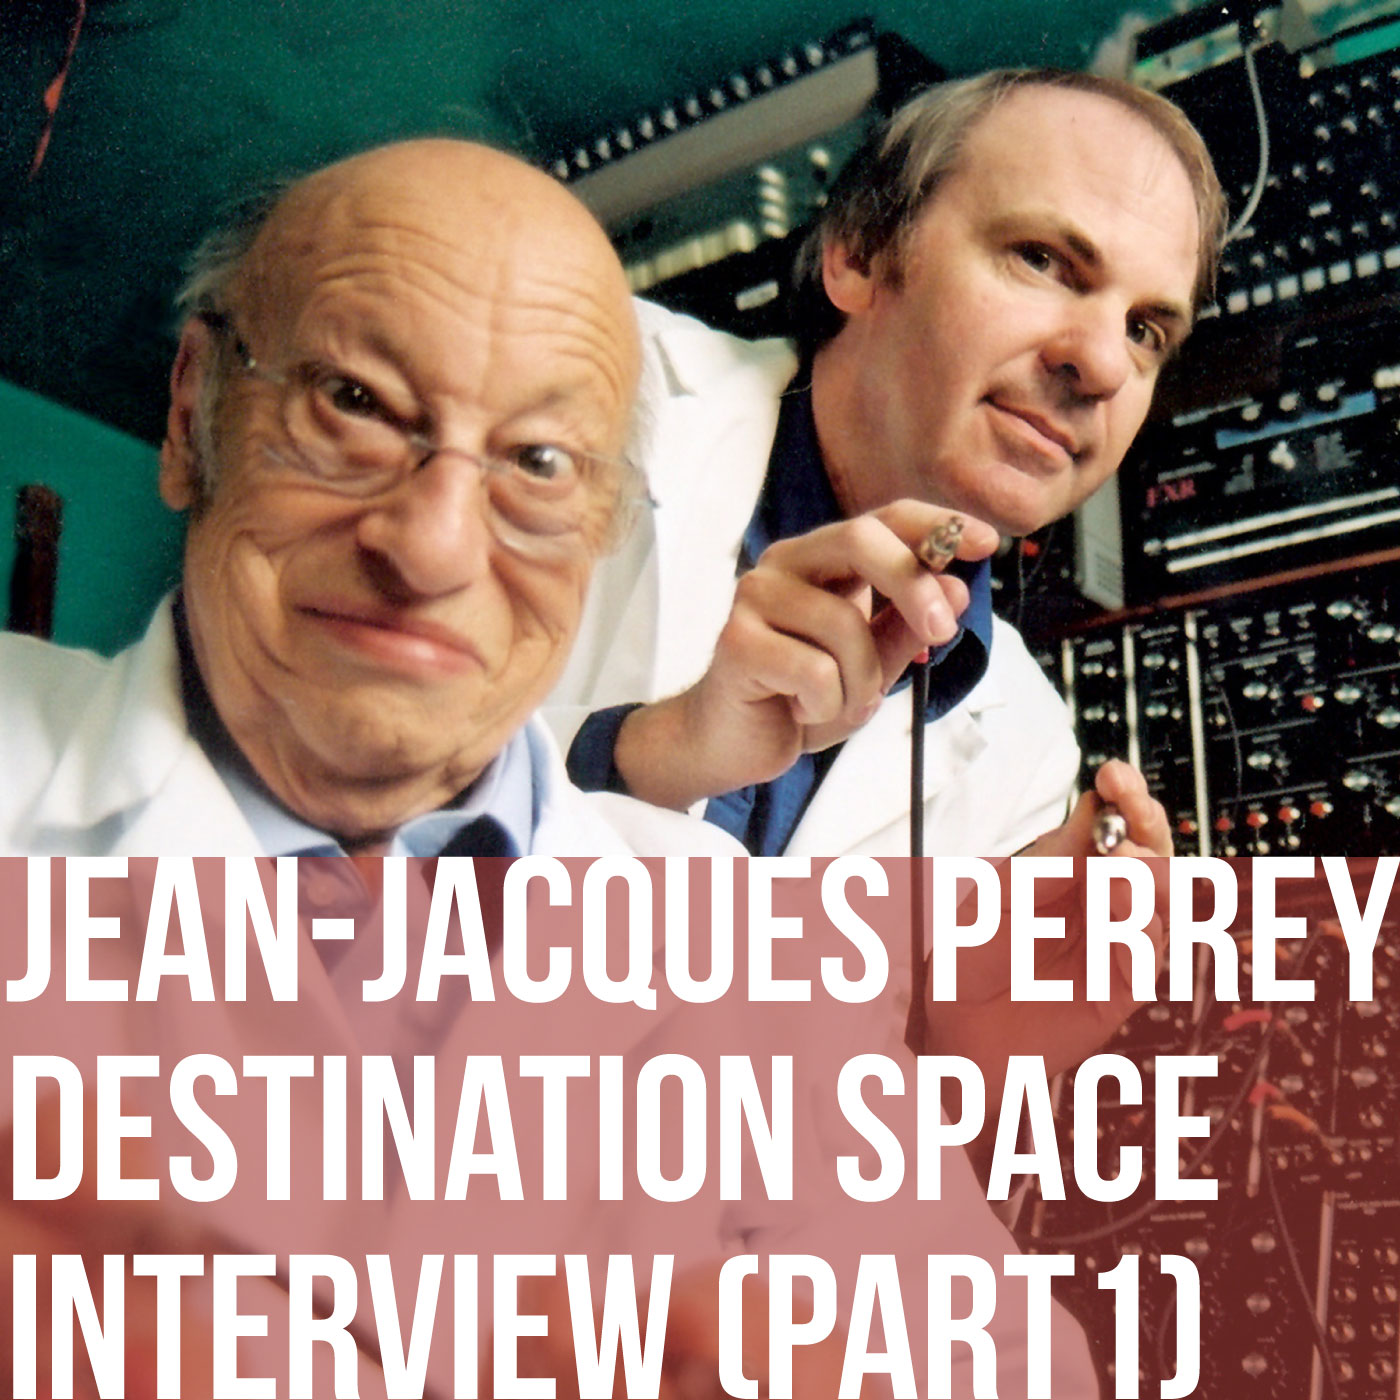 Jean-Jacques Perrey Destination Space interview - part 1